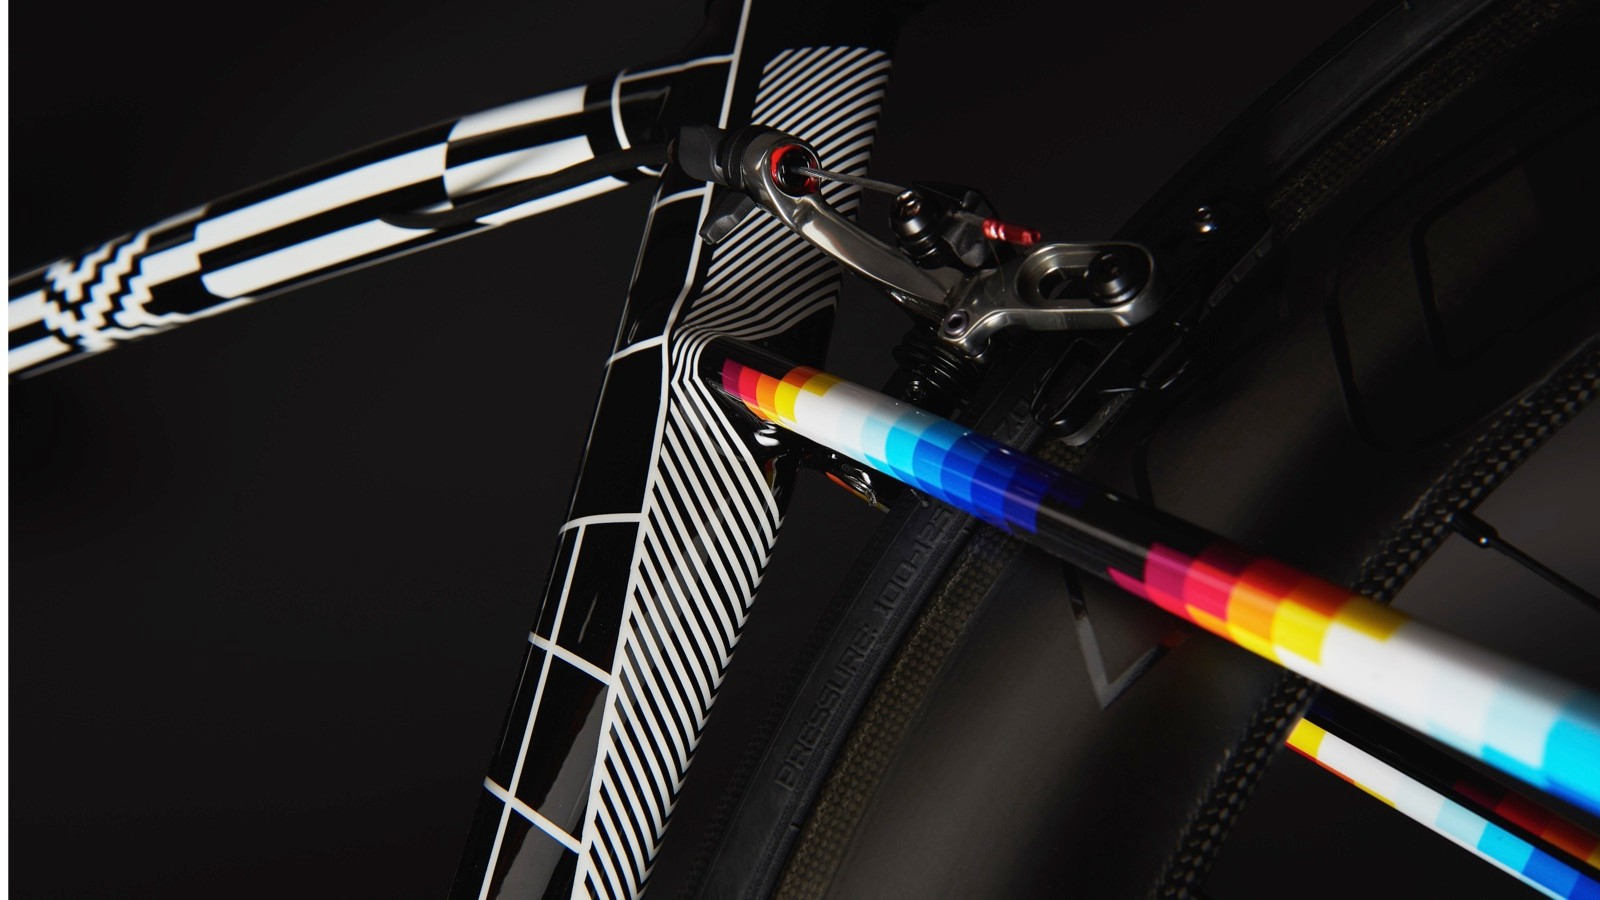 The design incorporate all sorts of elements from Felipe Pantone's work